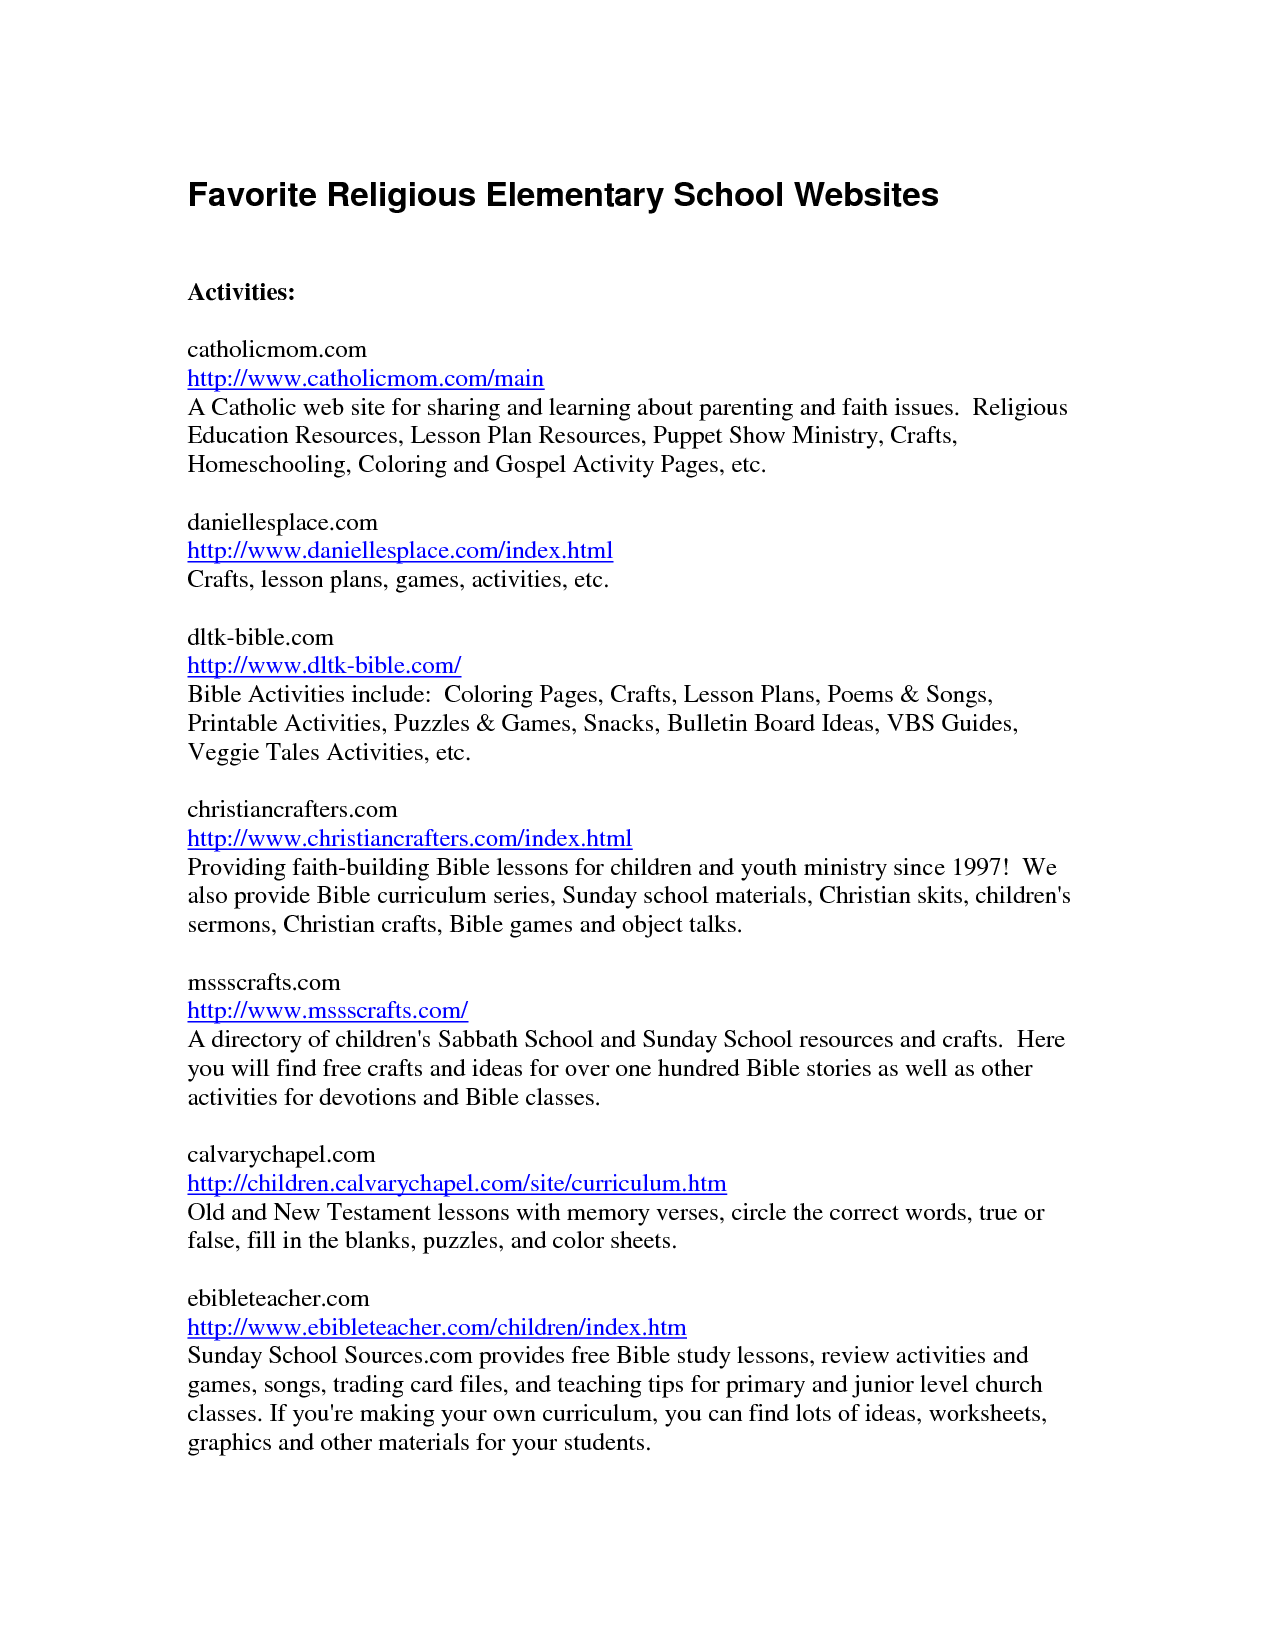 catholic religious education board ideas | Favorite Religious ...